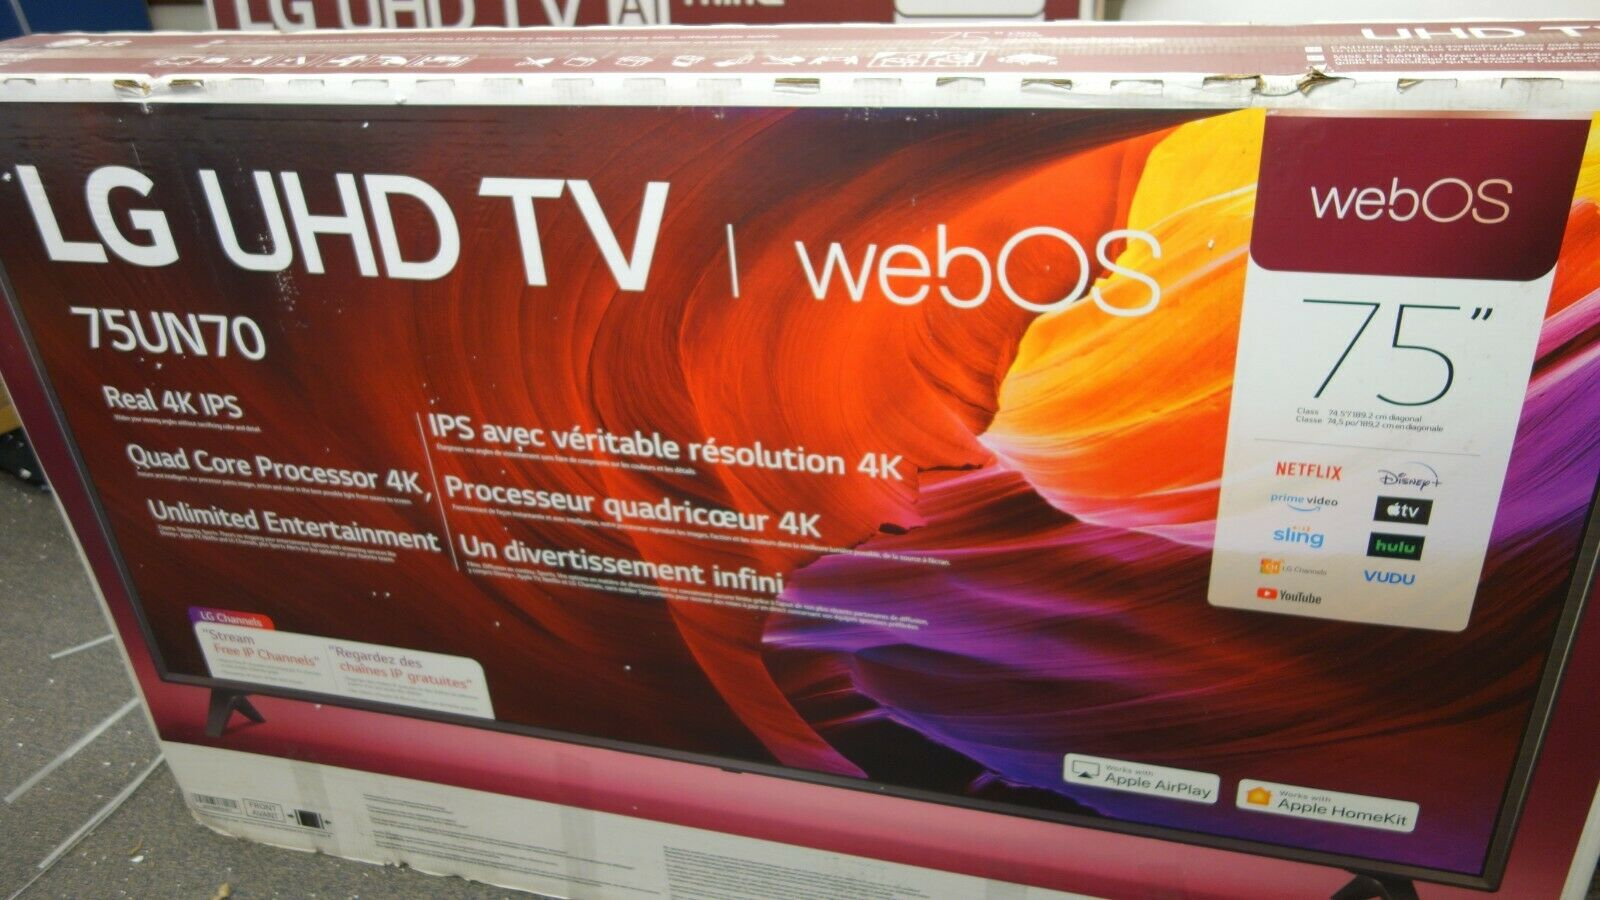 LG - 75 Class UN7070 Series LED 4K UHD Smart webOS TV(AR280). Available Now for 699.99